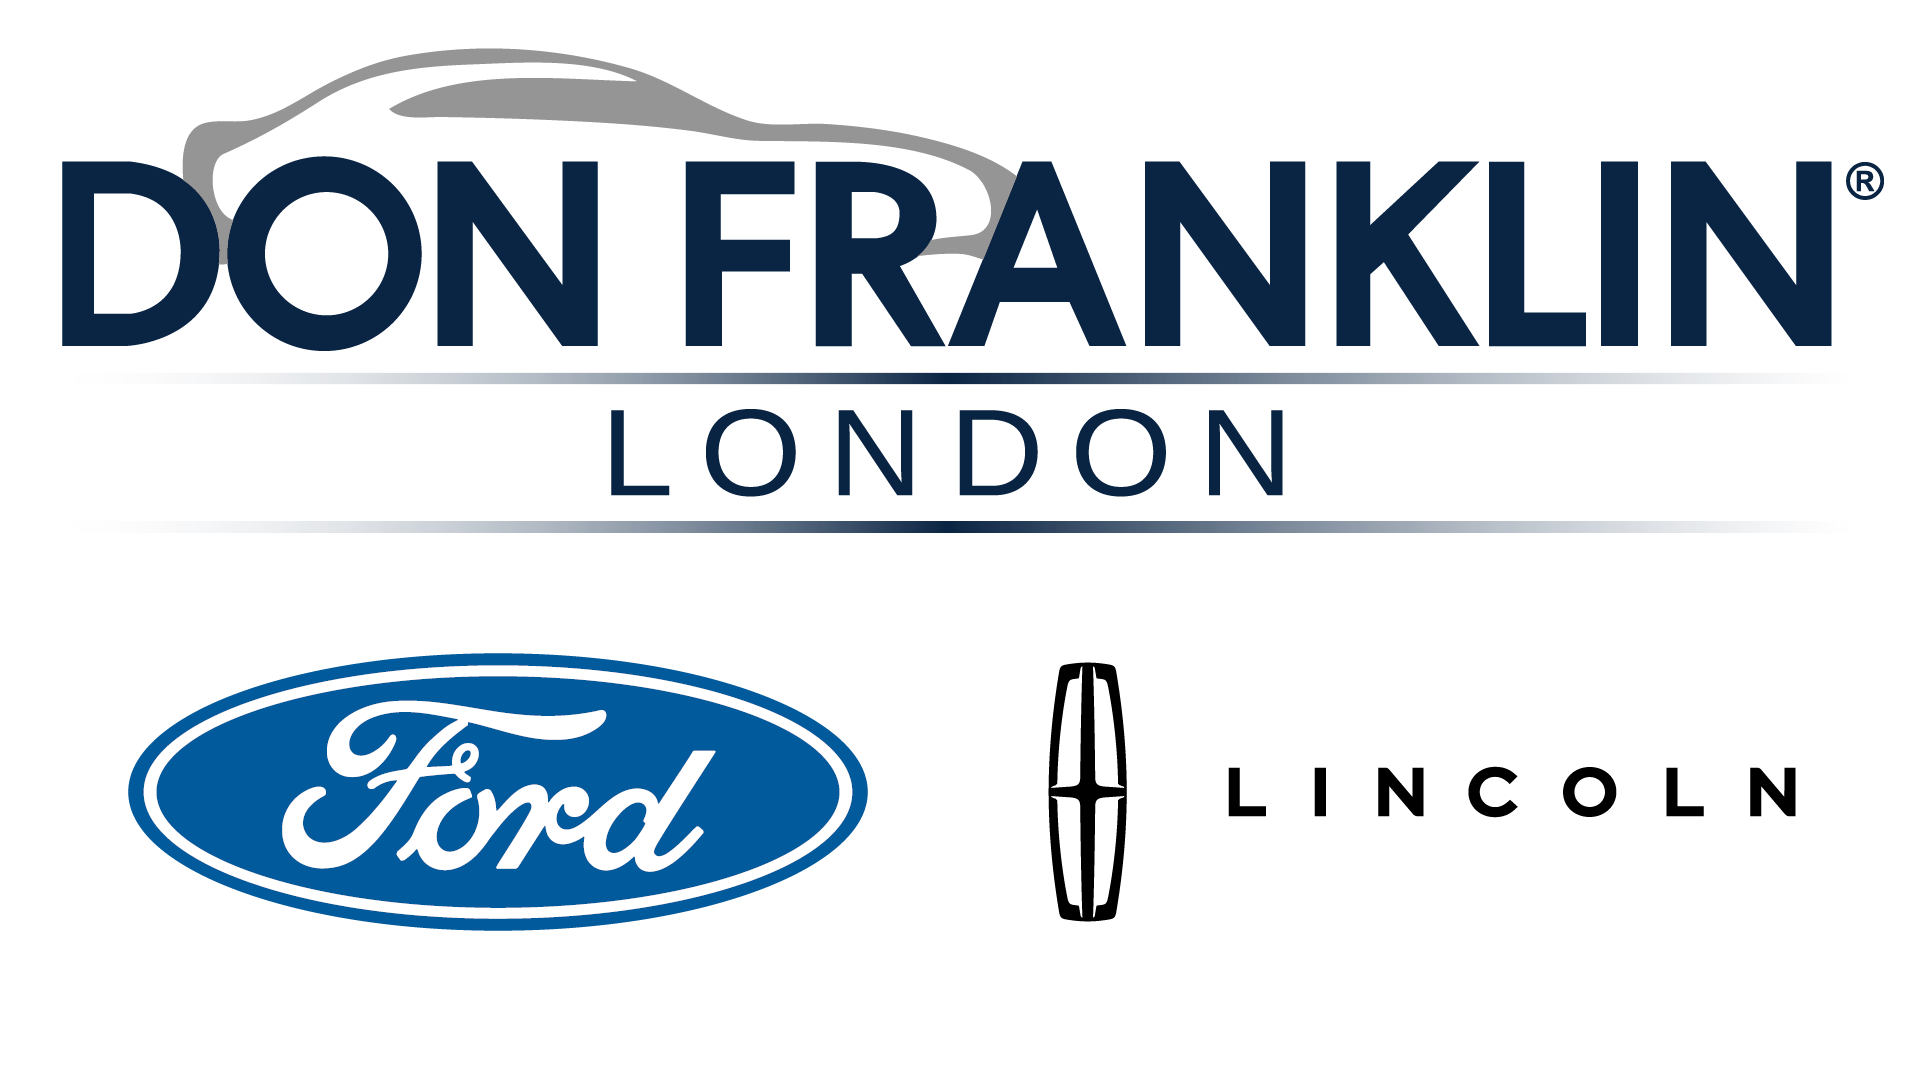 Don Franklin London Ford Lincoln